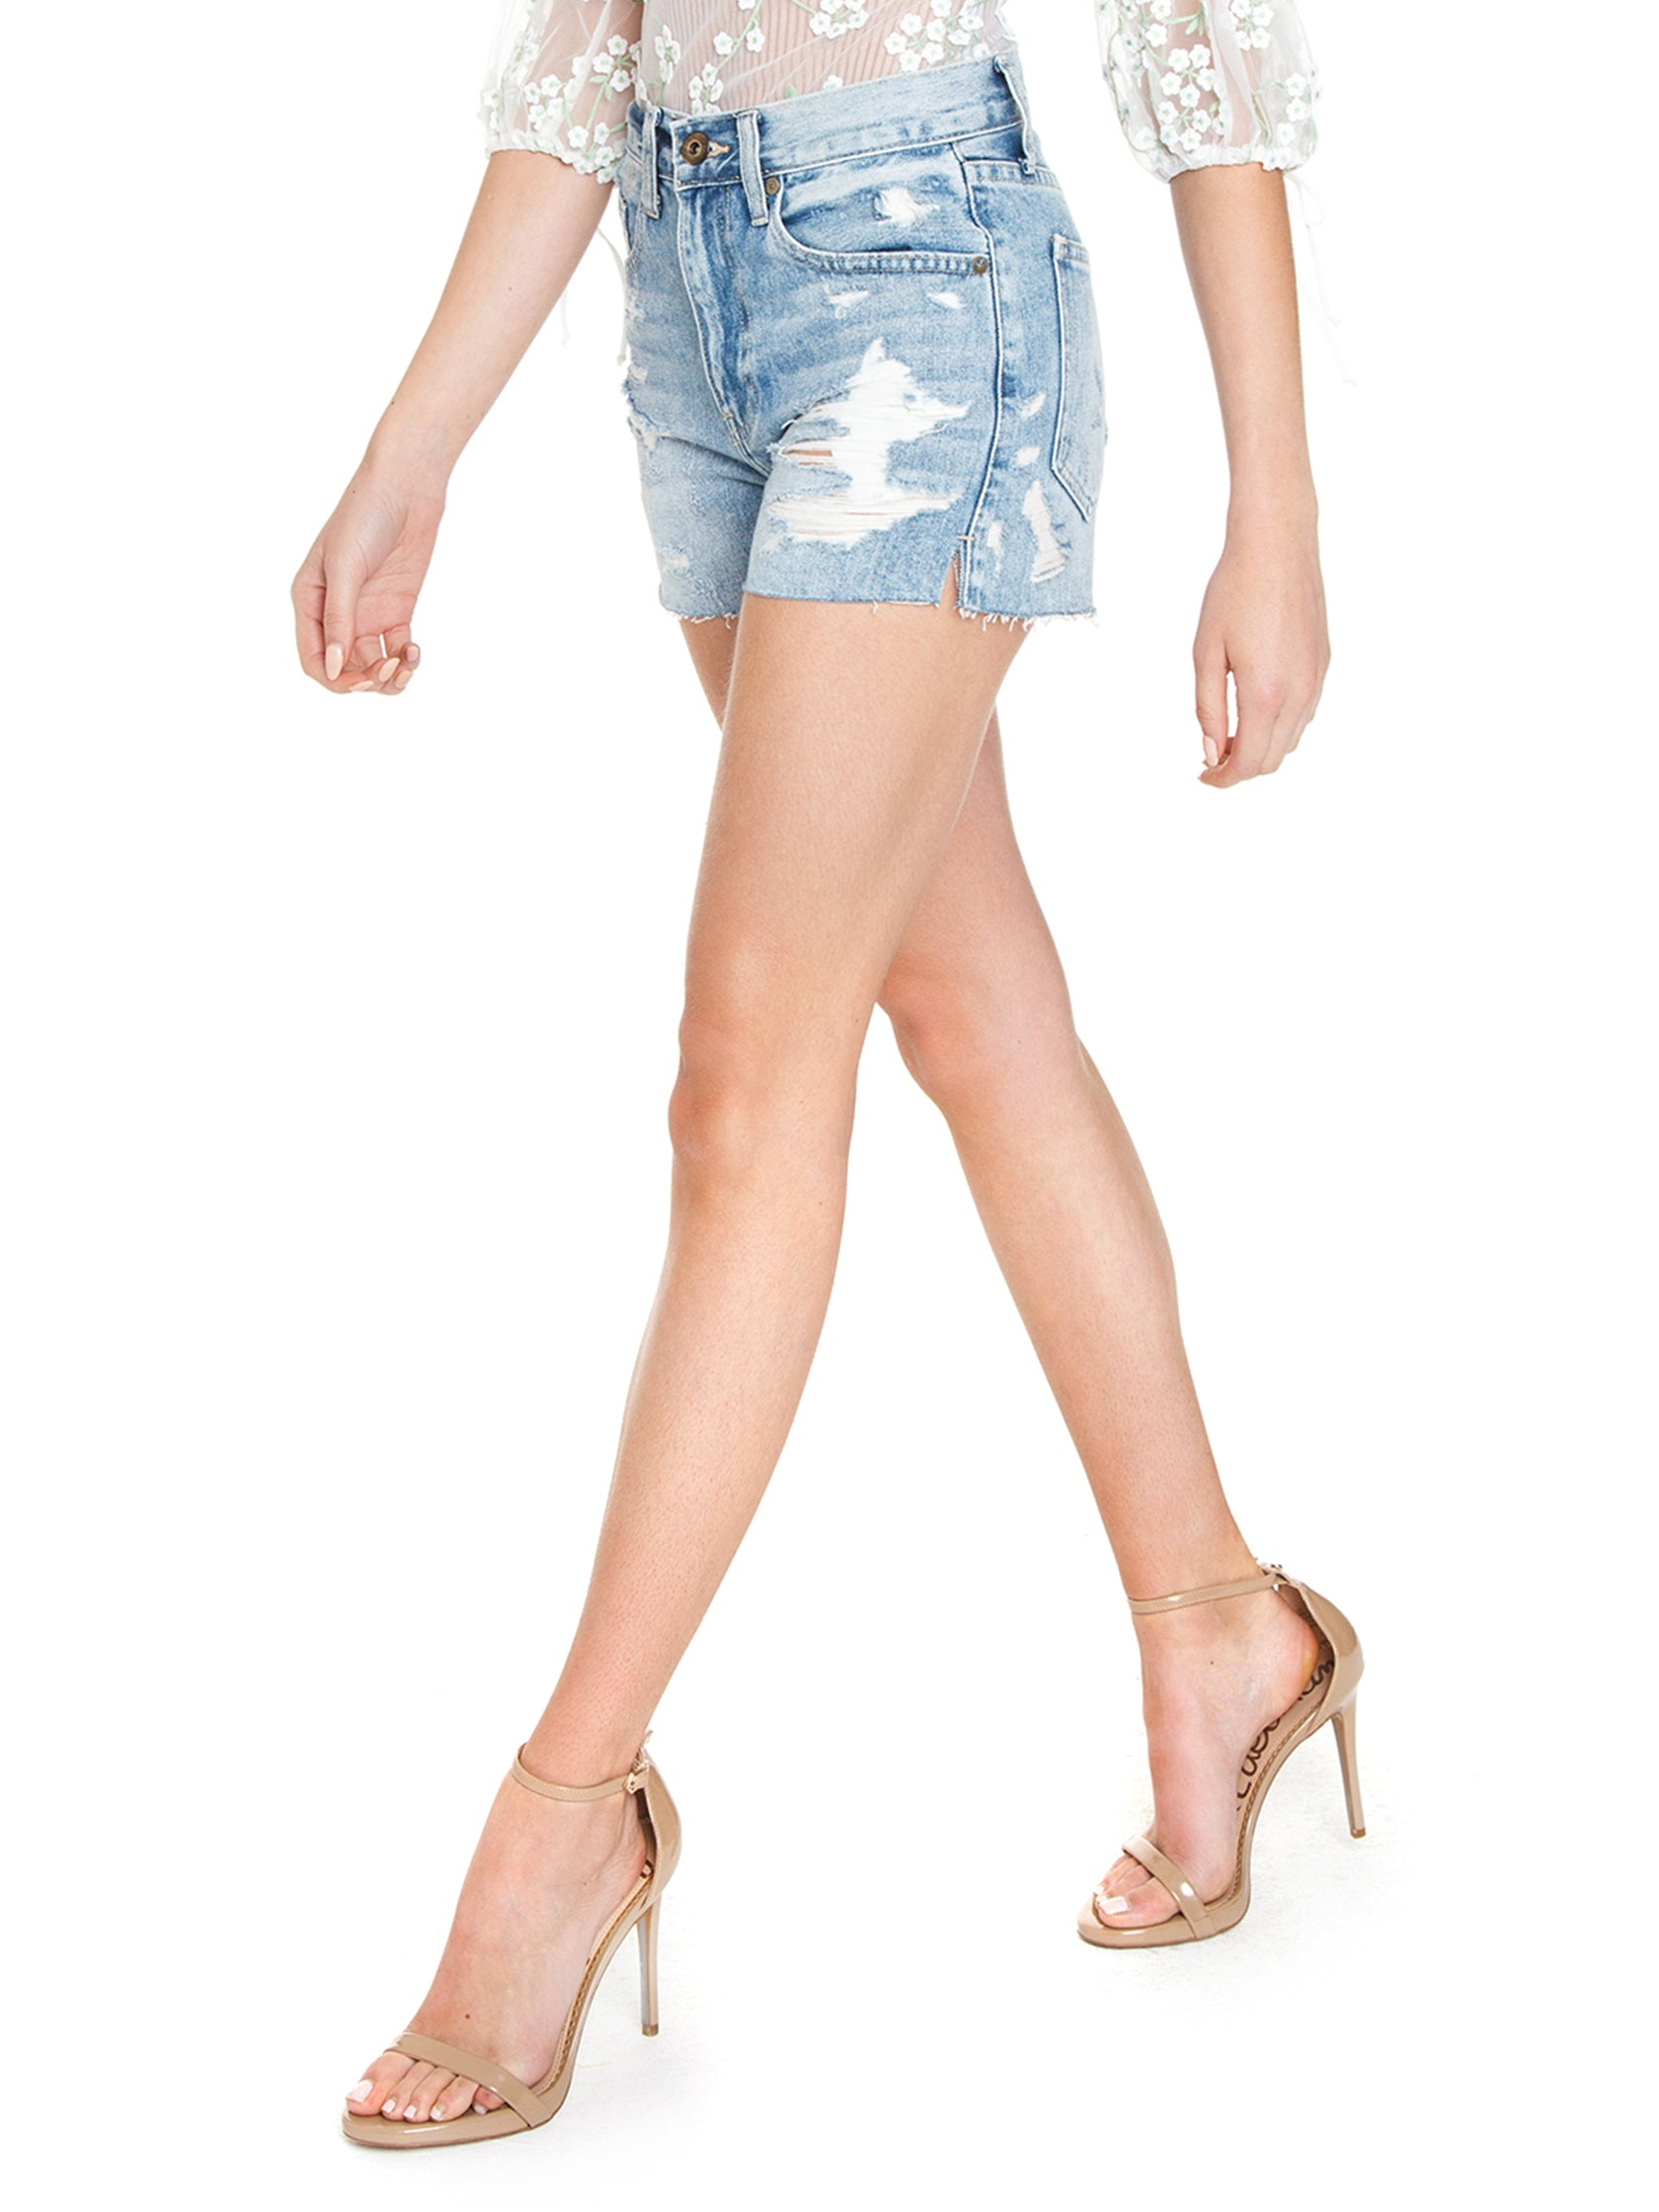 Women wearing a shorts rental from PISTOLA called Santa Fe Shorts